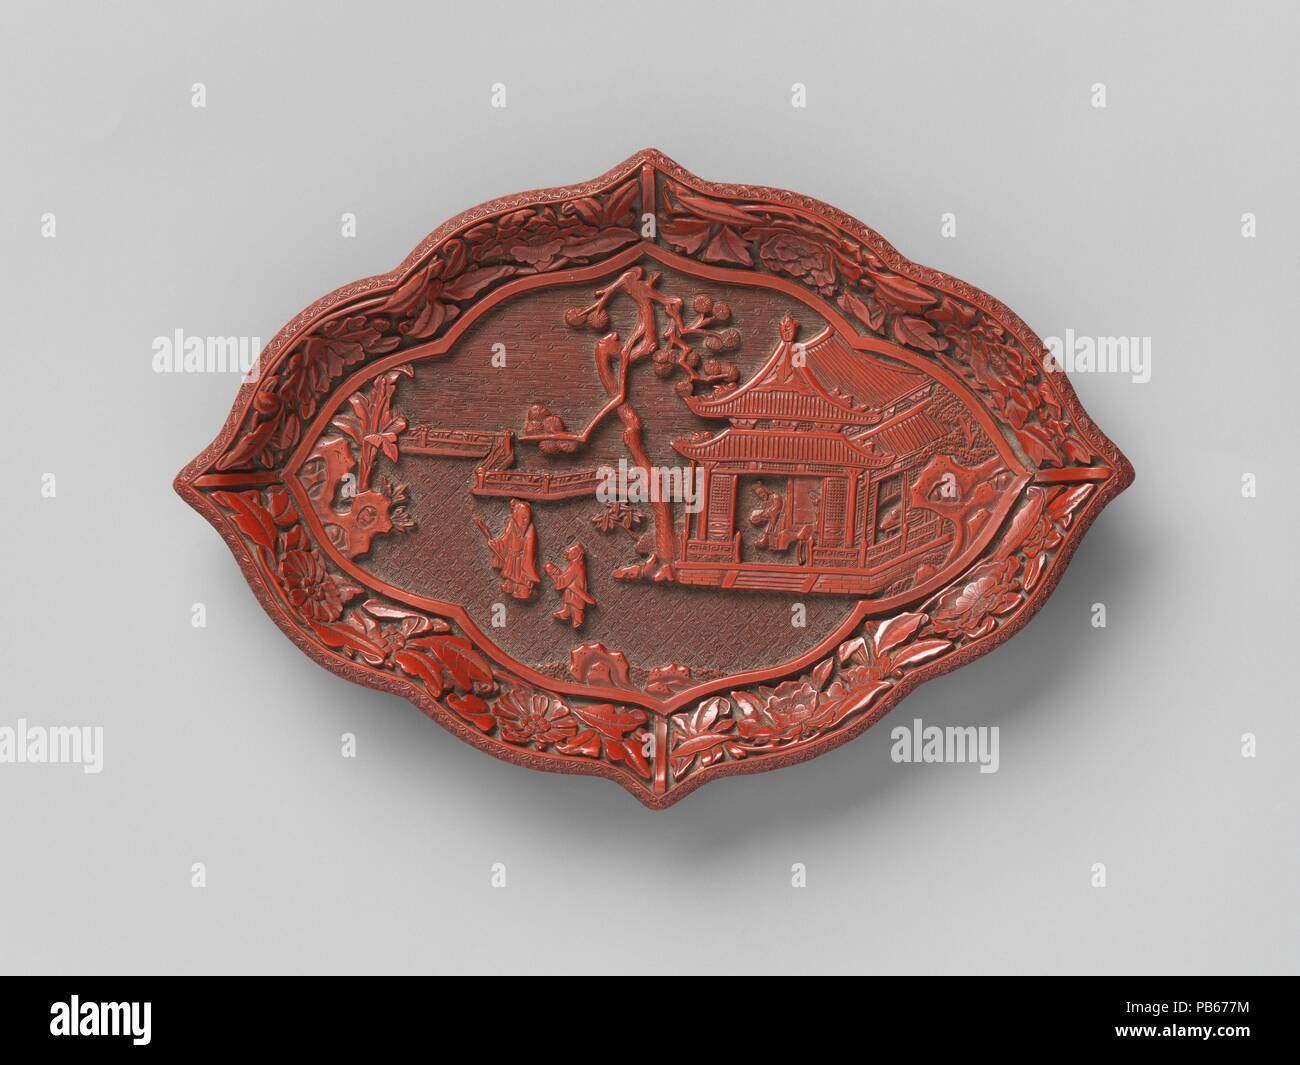 Lozenge-shaped dish with garden scene. Culture: China. Dimensions: H. 7/8 in. (2.2 cm); W. 5 3/8 in. (13.7 cm); L. 7 7/8 in. (20 cm). Date: 14th century.  A scholar-gentleman walks with an attendant, who is holding a zither (a stringed instrument), as they leave another figure in a nearby pavilion. They are either coming from or going to a festive event that would have included music, painting, poetry, and wine. Museum: Metropolitan Museum of Art, New York, USA. - Stock Image